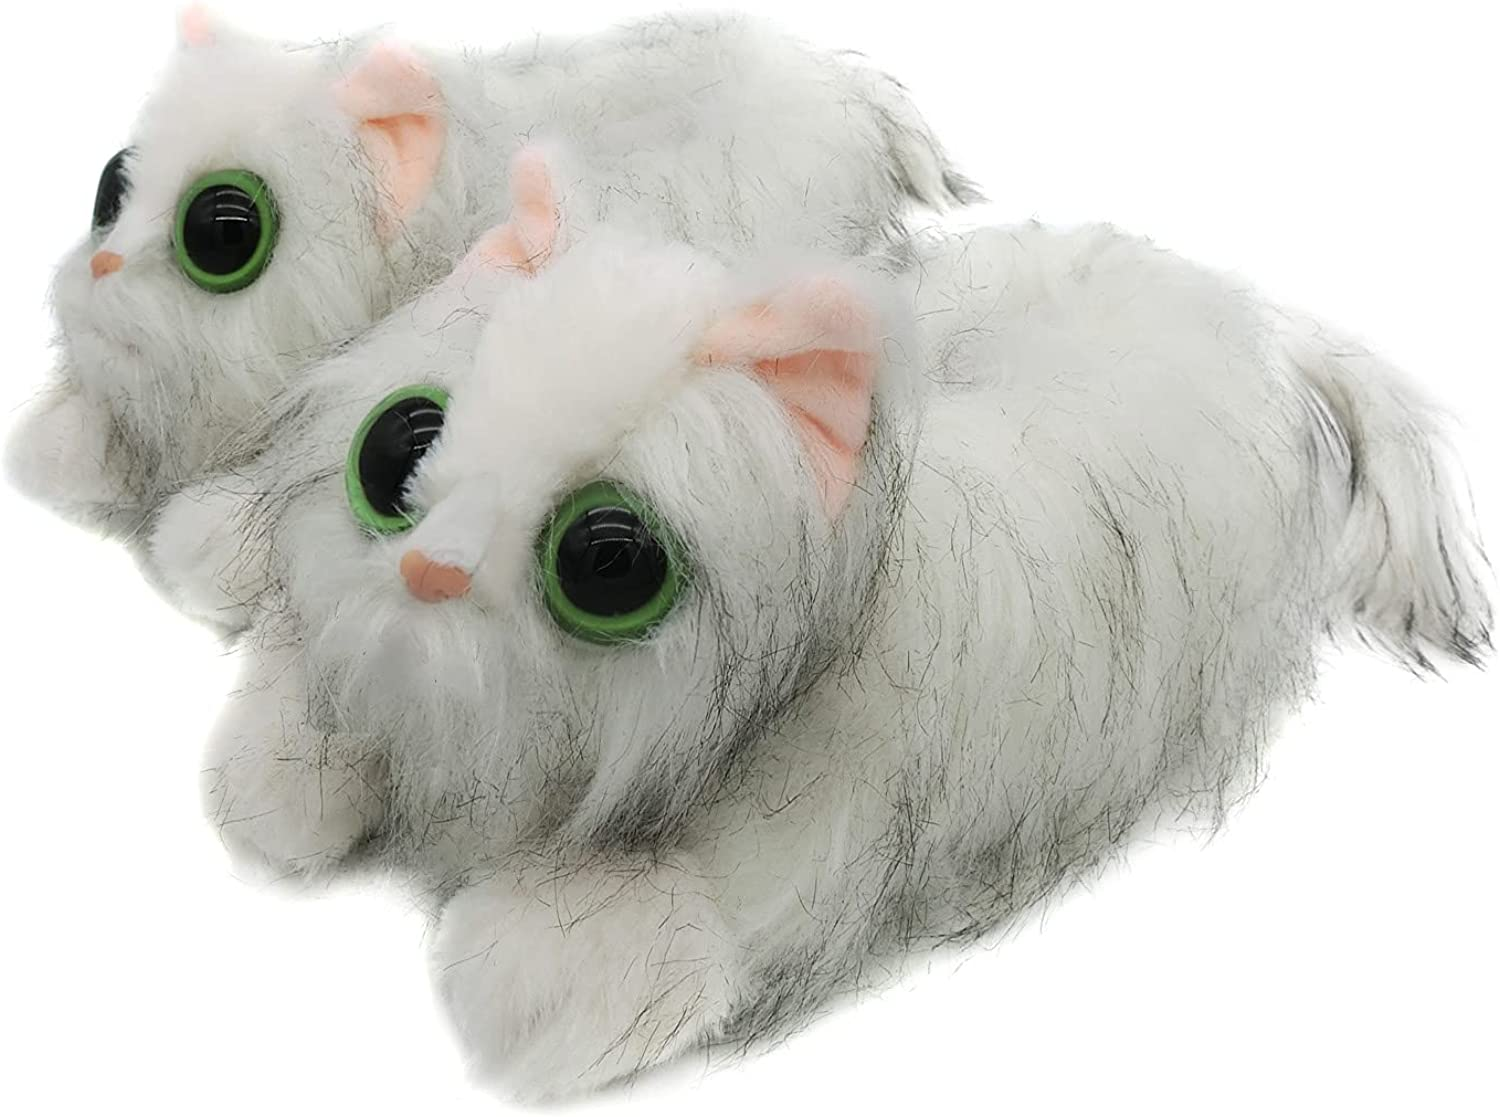 Indoor Fuzzy Winter Animal Cat Topics on TV Plush Slippers for Kitty Clearance SALE! Limited time! Men Soft